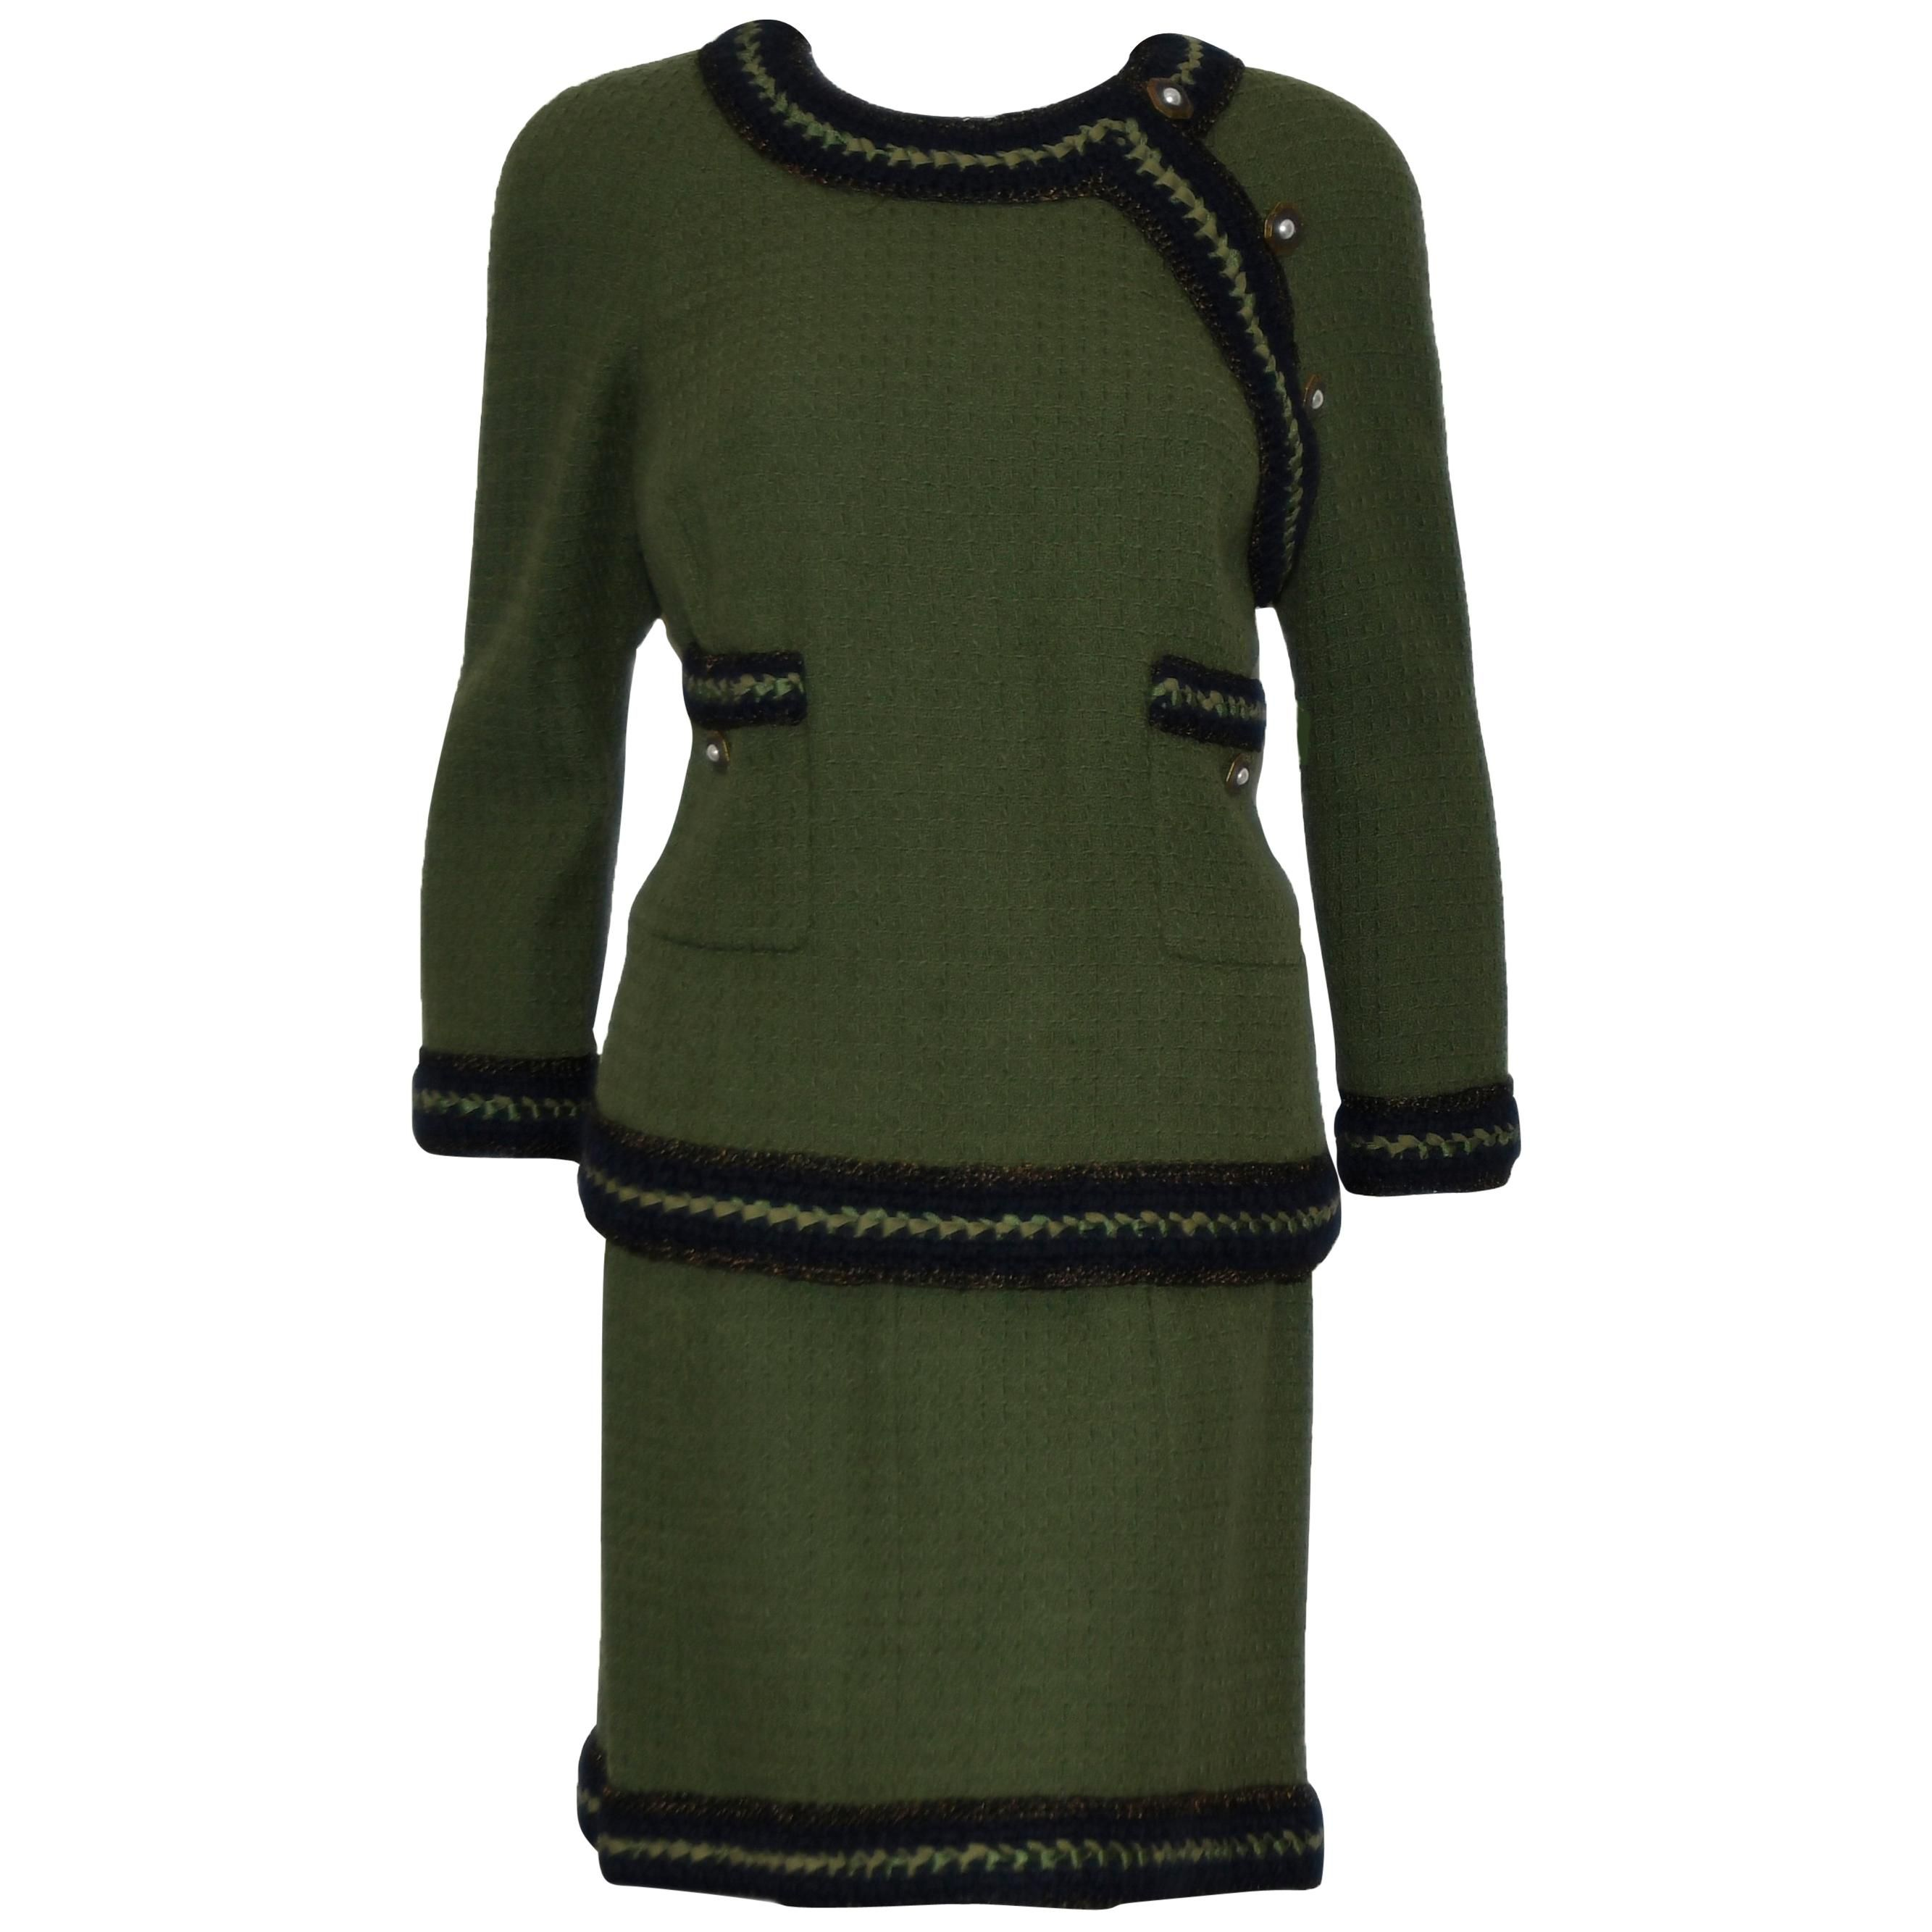 693d61e6f4d Chanel Olive Green Skirt Suit w  Navy Blue Trim For Sale at 1stdibs ...